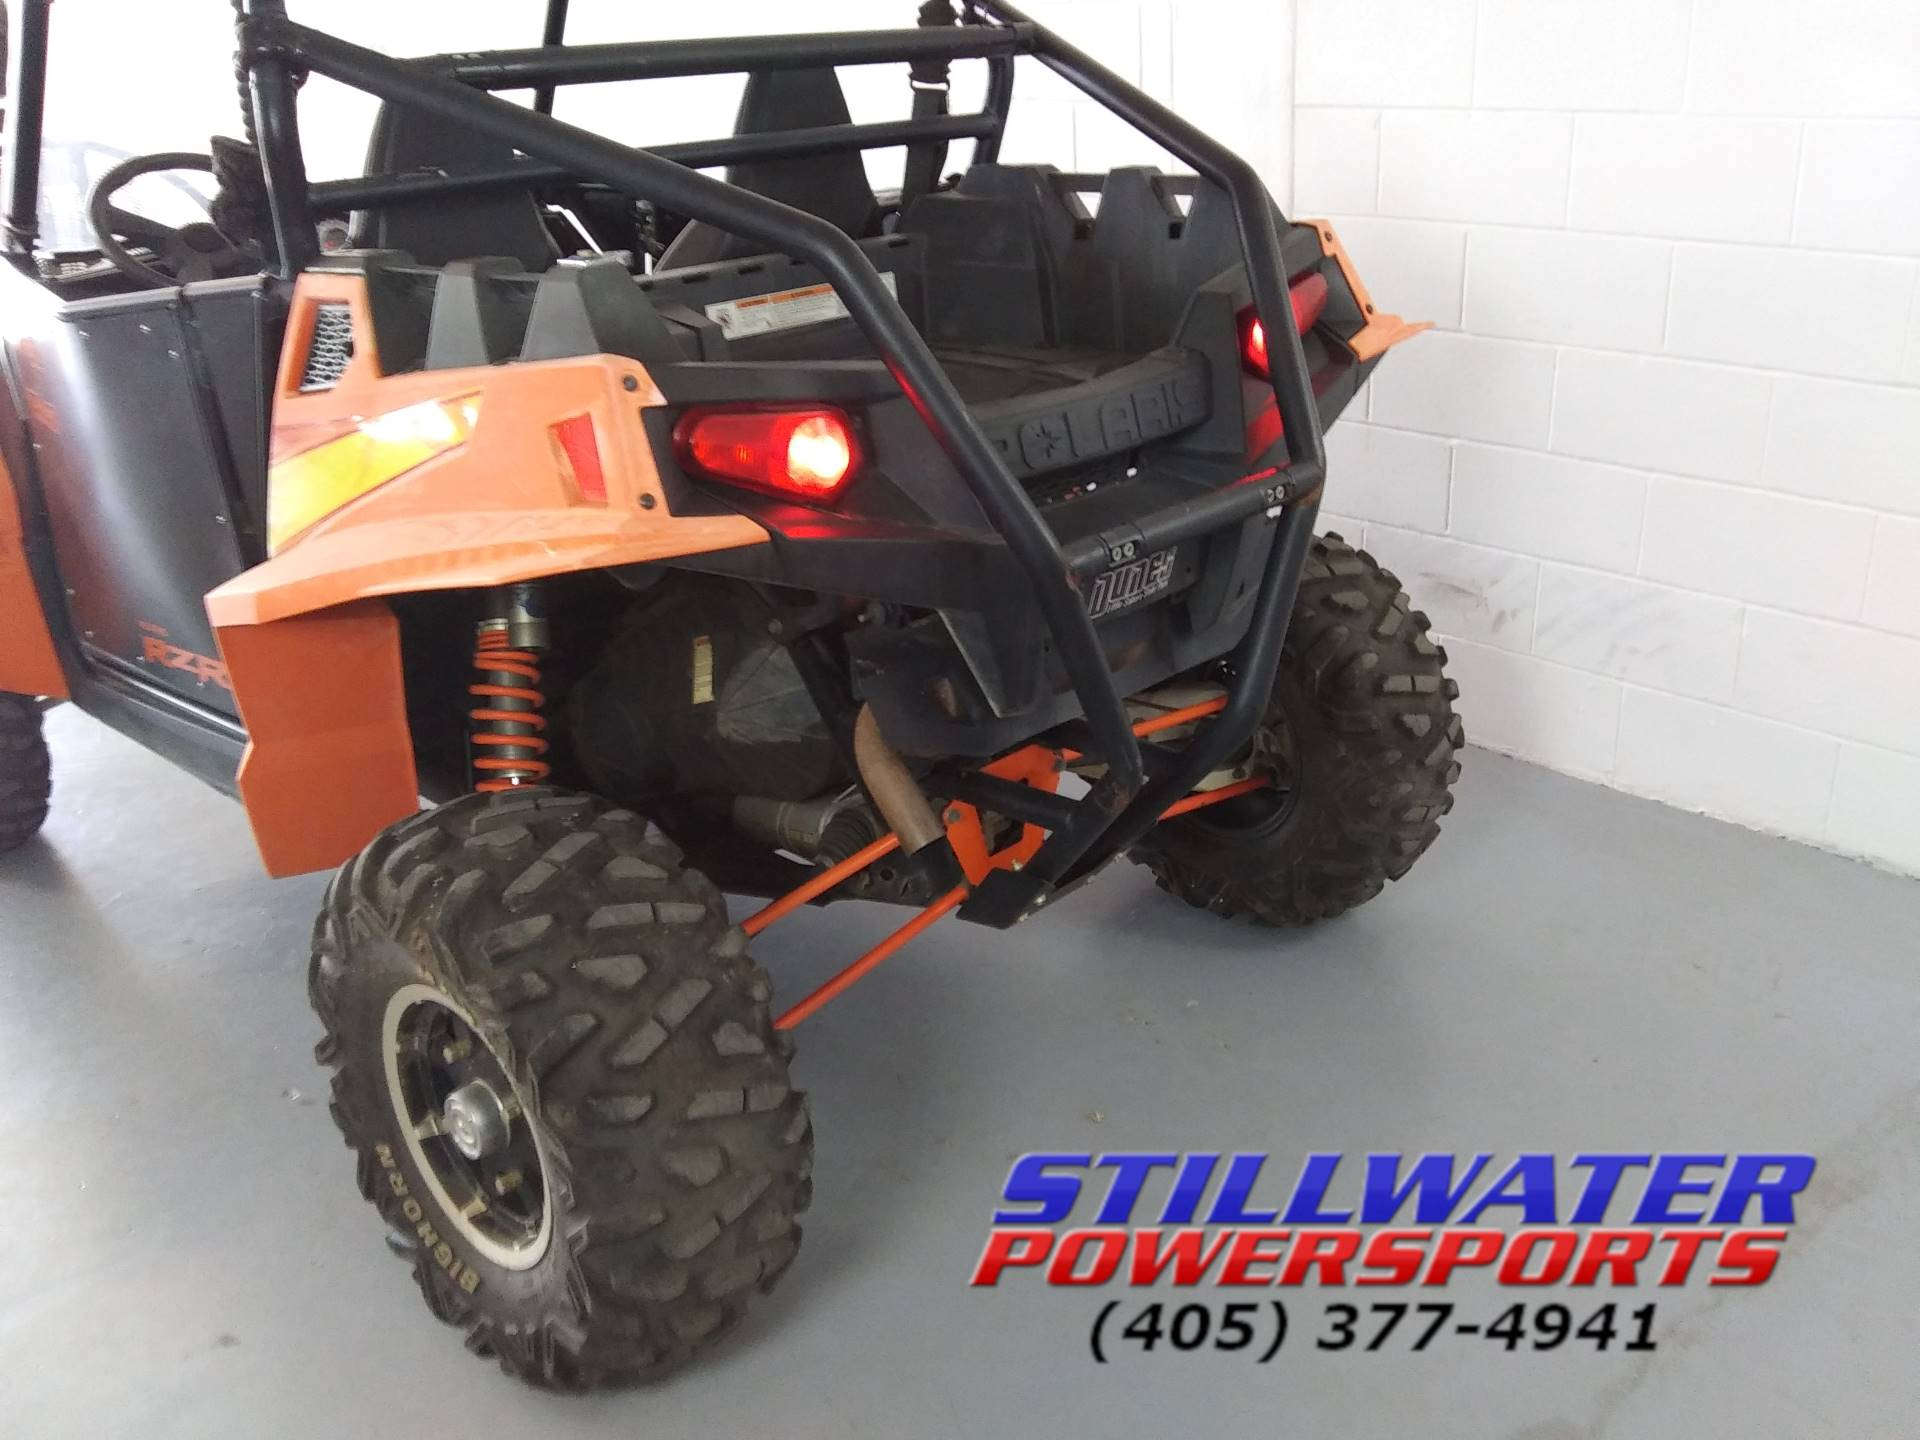 2012 Polaris Ranger RZR® XP 900 LE in Stillwater, Oklahoma - Photo 4